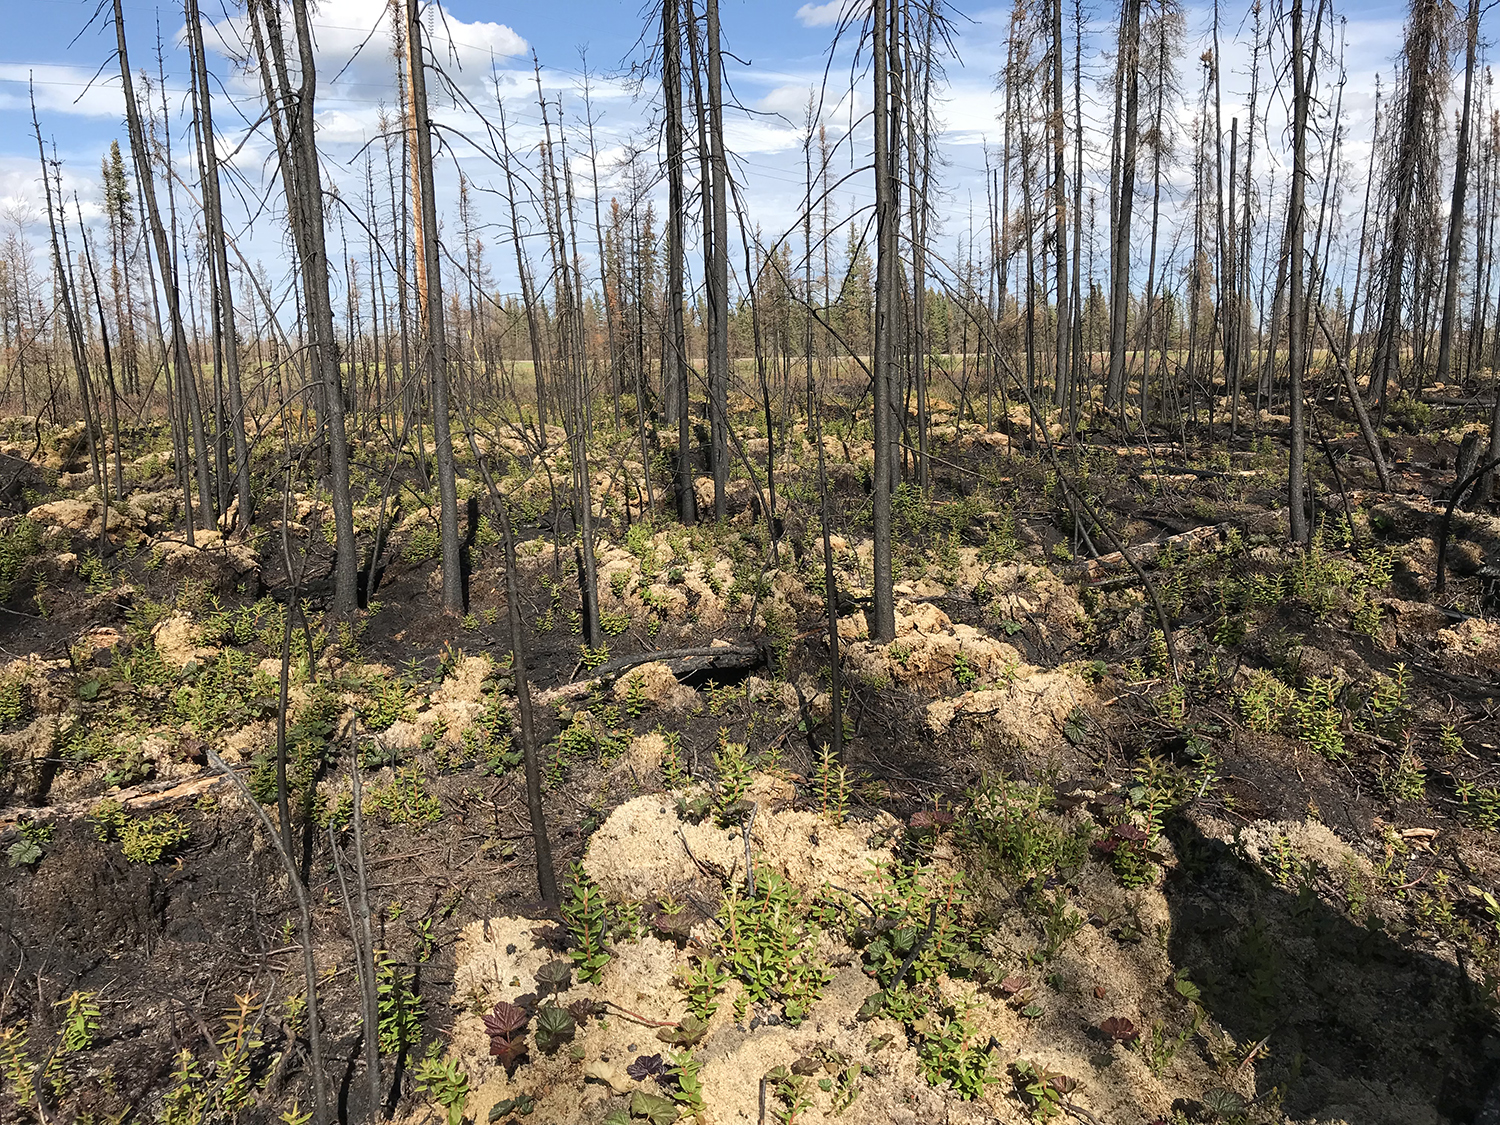 Peatland post forest fire.